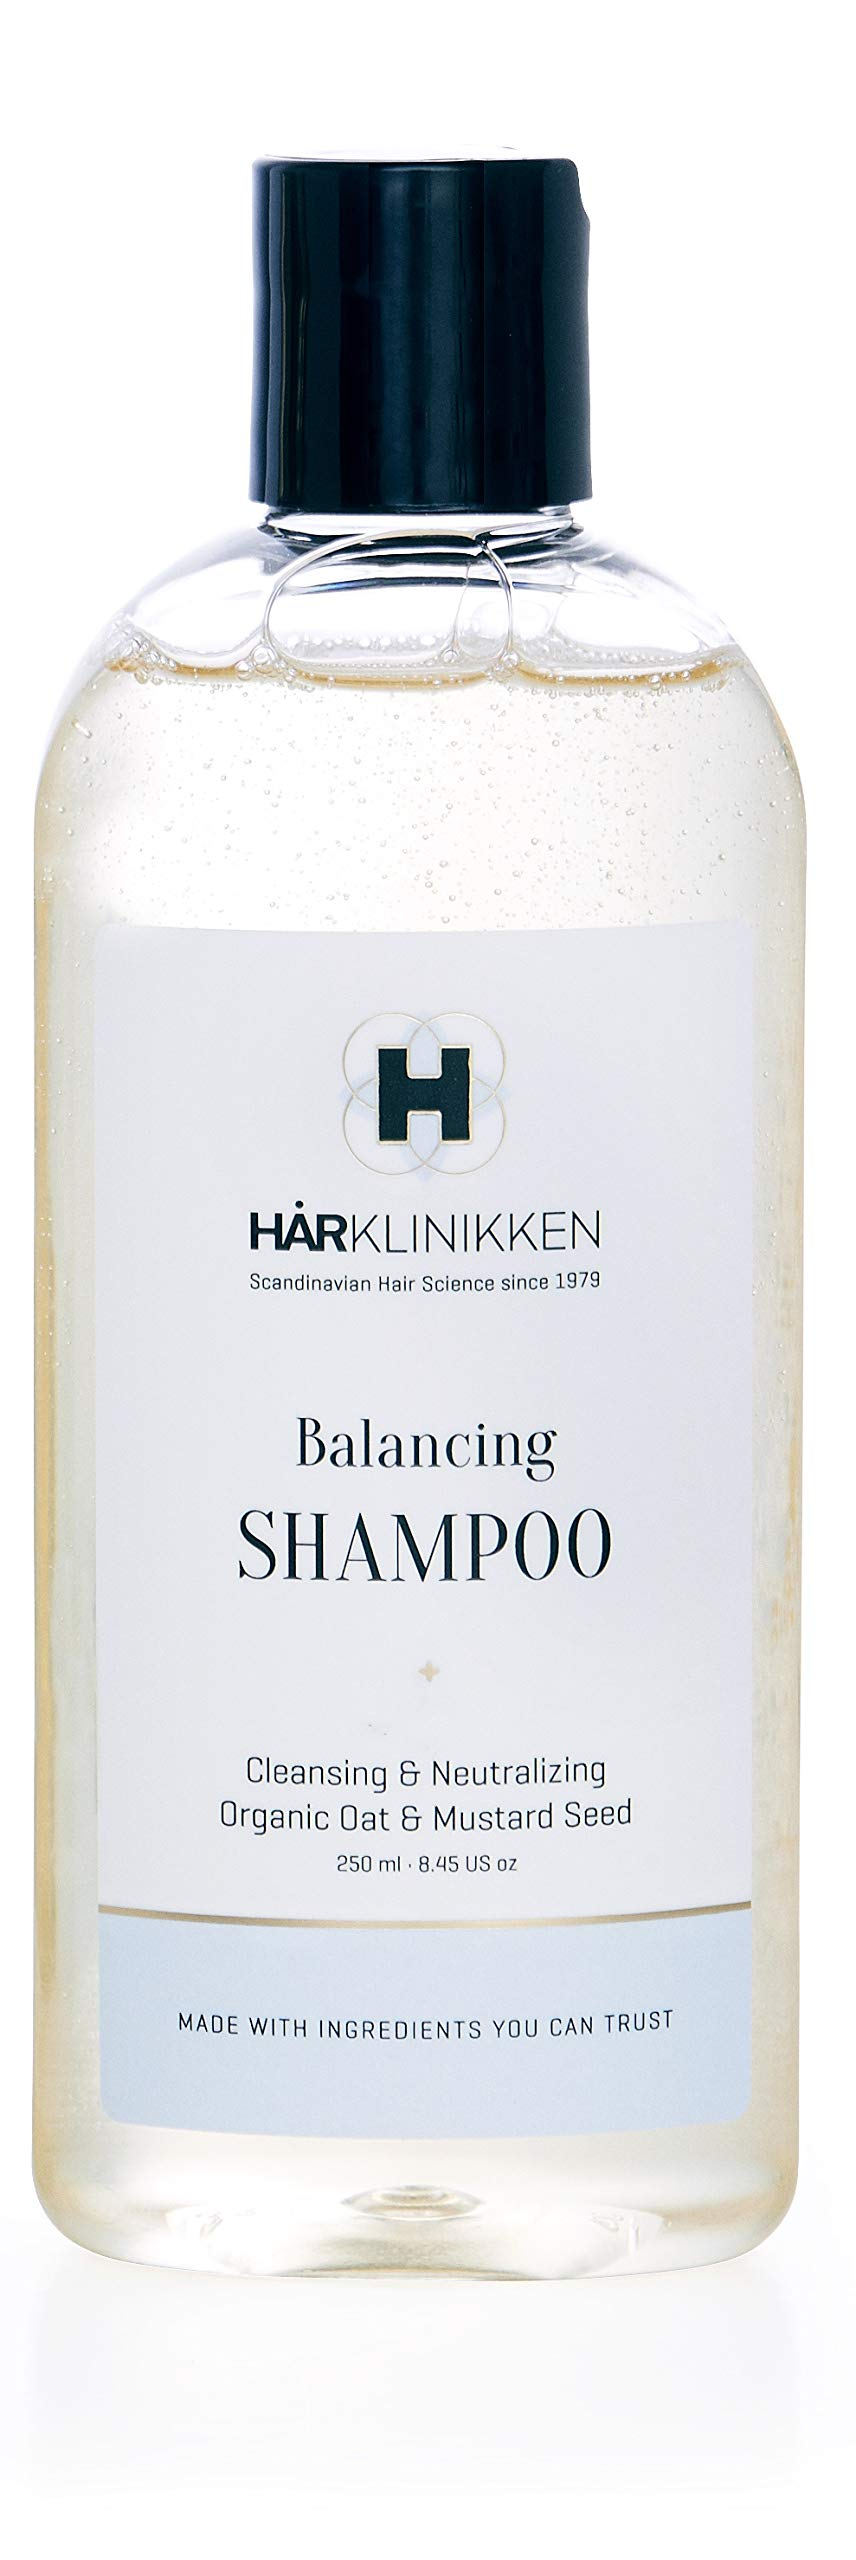 Harklinikken Advanced Cleansing & Treatment Set | 8.45 Oz. Balancing Shampoo & 8.45 Oz Restorative Shampoo | When washing daily: Alternate Product - For All Hair Types - Natural & Plant-Based by Harklinikken (Image #2)